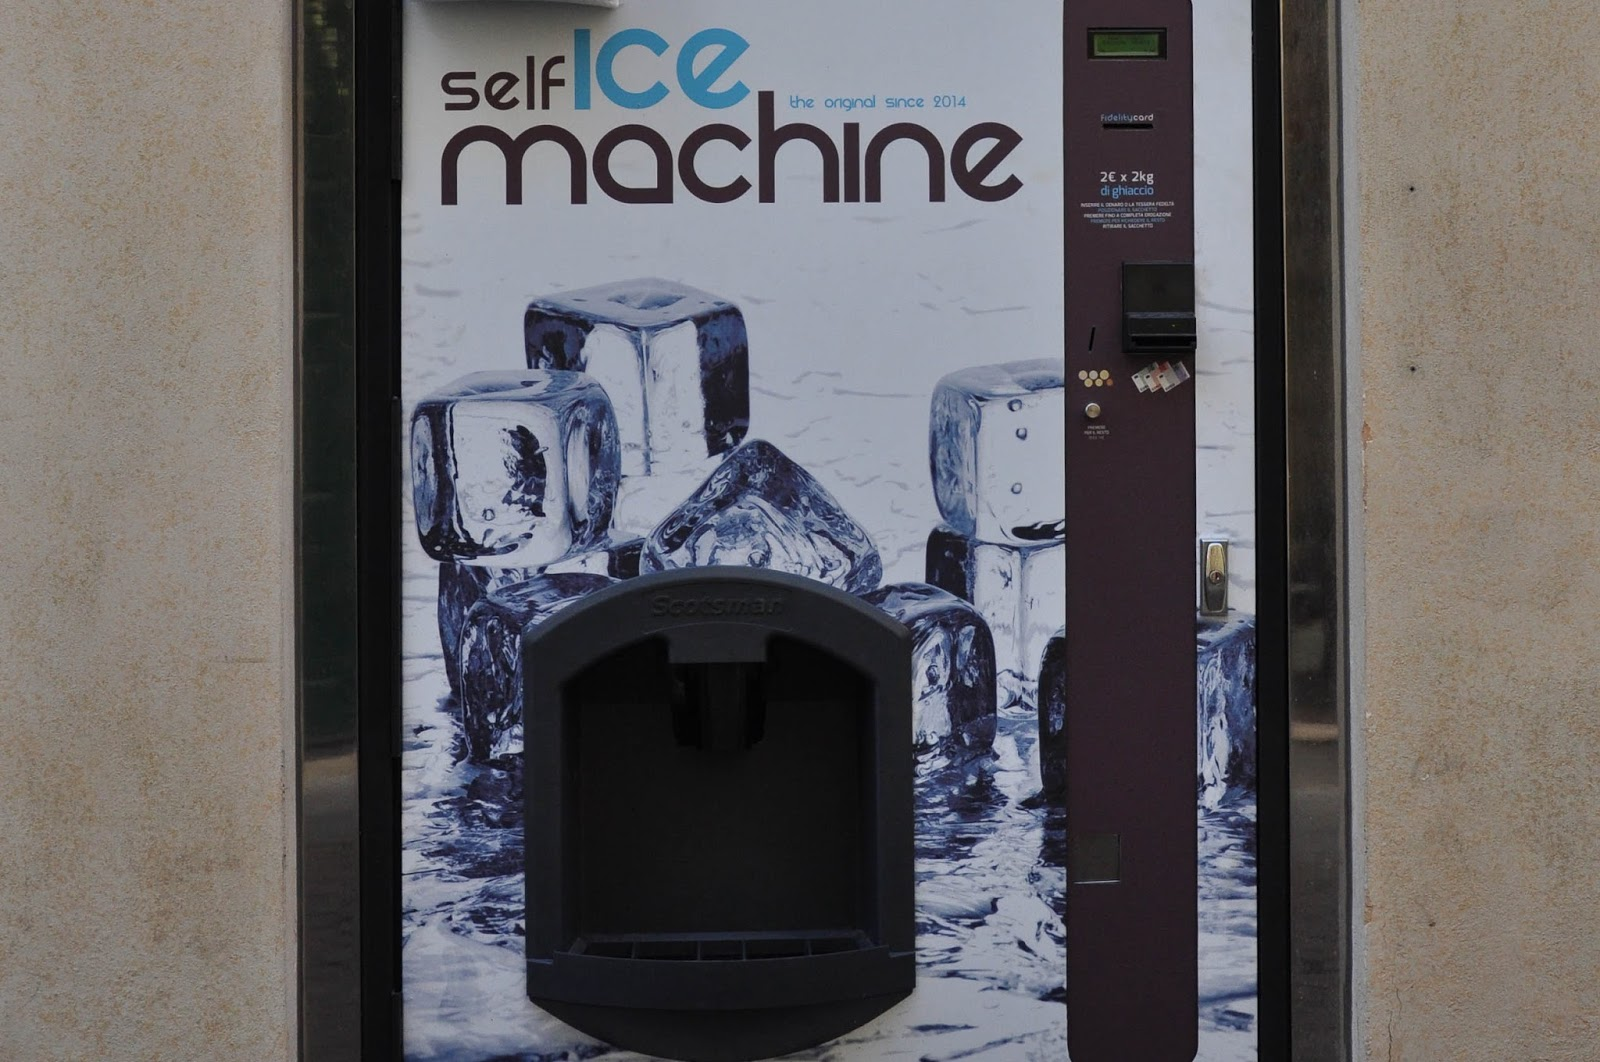 Close-up of an ice-vending machine, Vicenza, Veneto, Italy